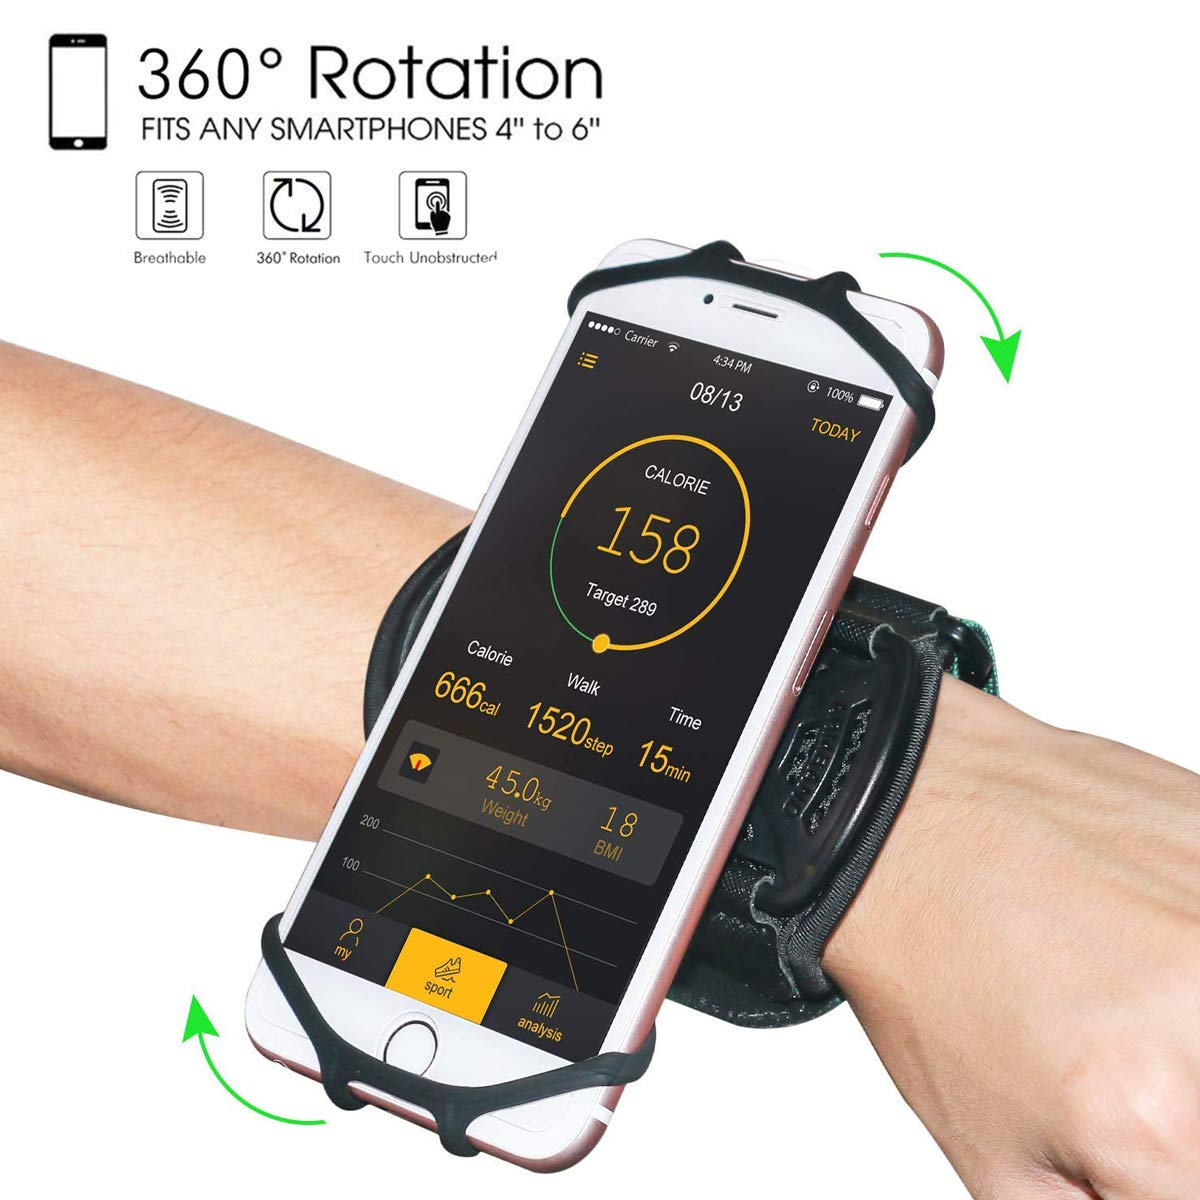 Wristband Phone Holder,HC 360°Rotatable Universal Sports Wristband for iPhone X/8 Plus/8/7/6s,Galaxy S9 Plus/S9/S8 & Other 4''-6.5''Smartphone,Running Armband for Hiking Biking Walking (Wrist) by HC electronic